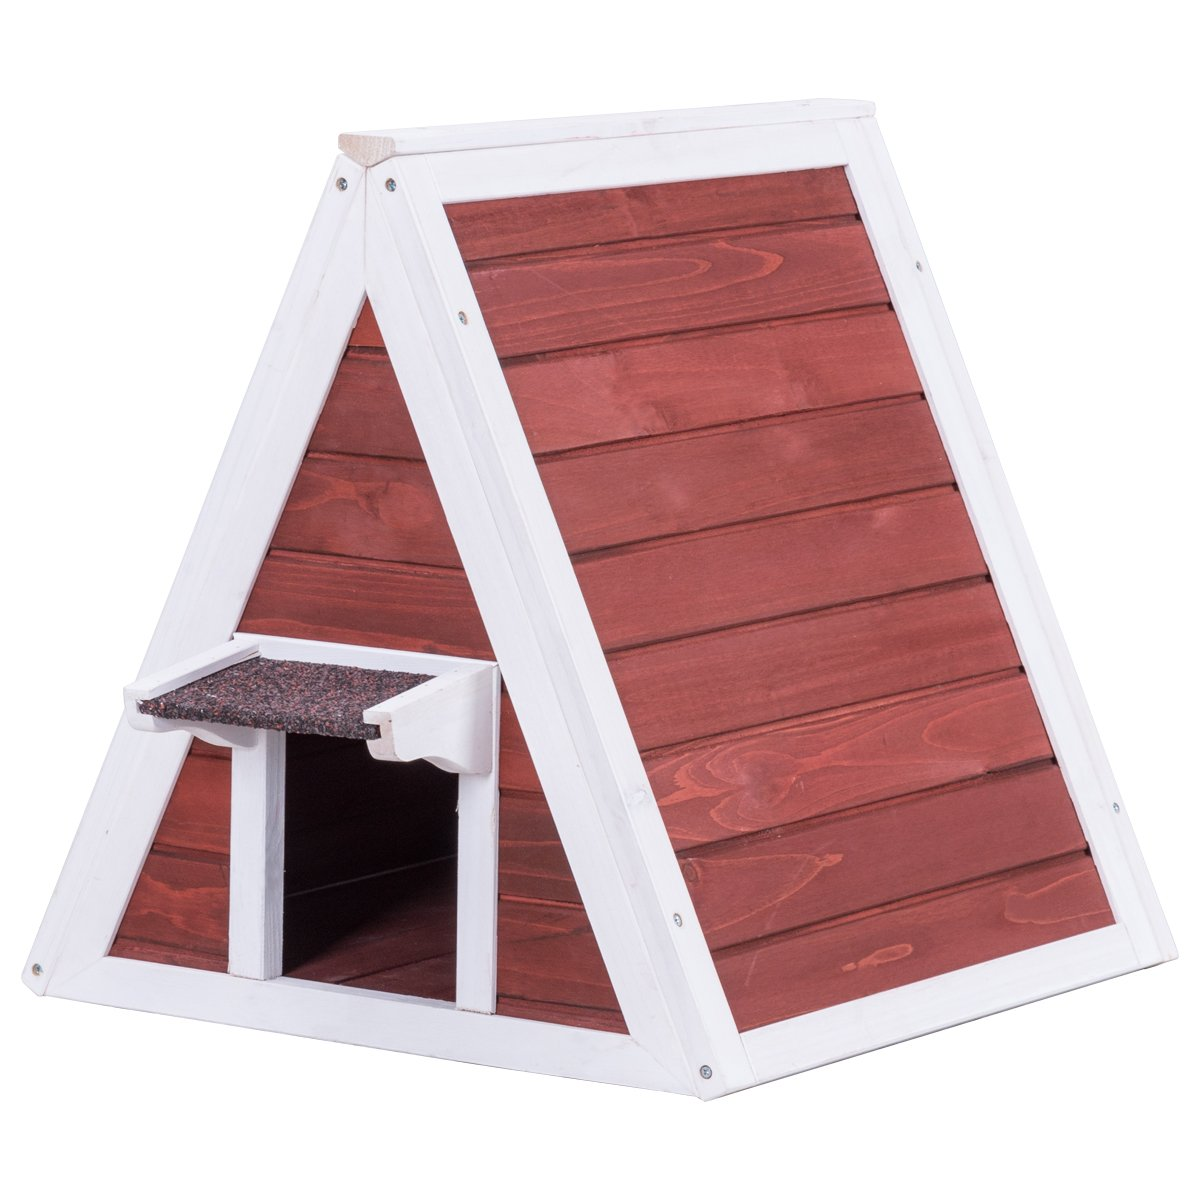 TANGKULA Cat House Wood Indoor Outdoor Weatherproof Pet Kitten Condo Shelter, Cat House with Eave